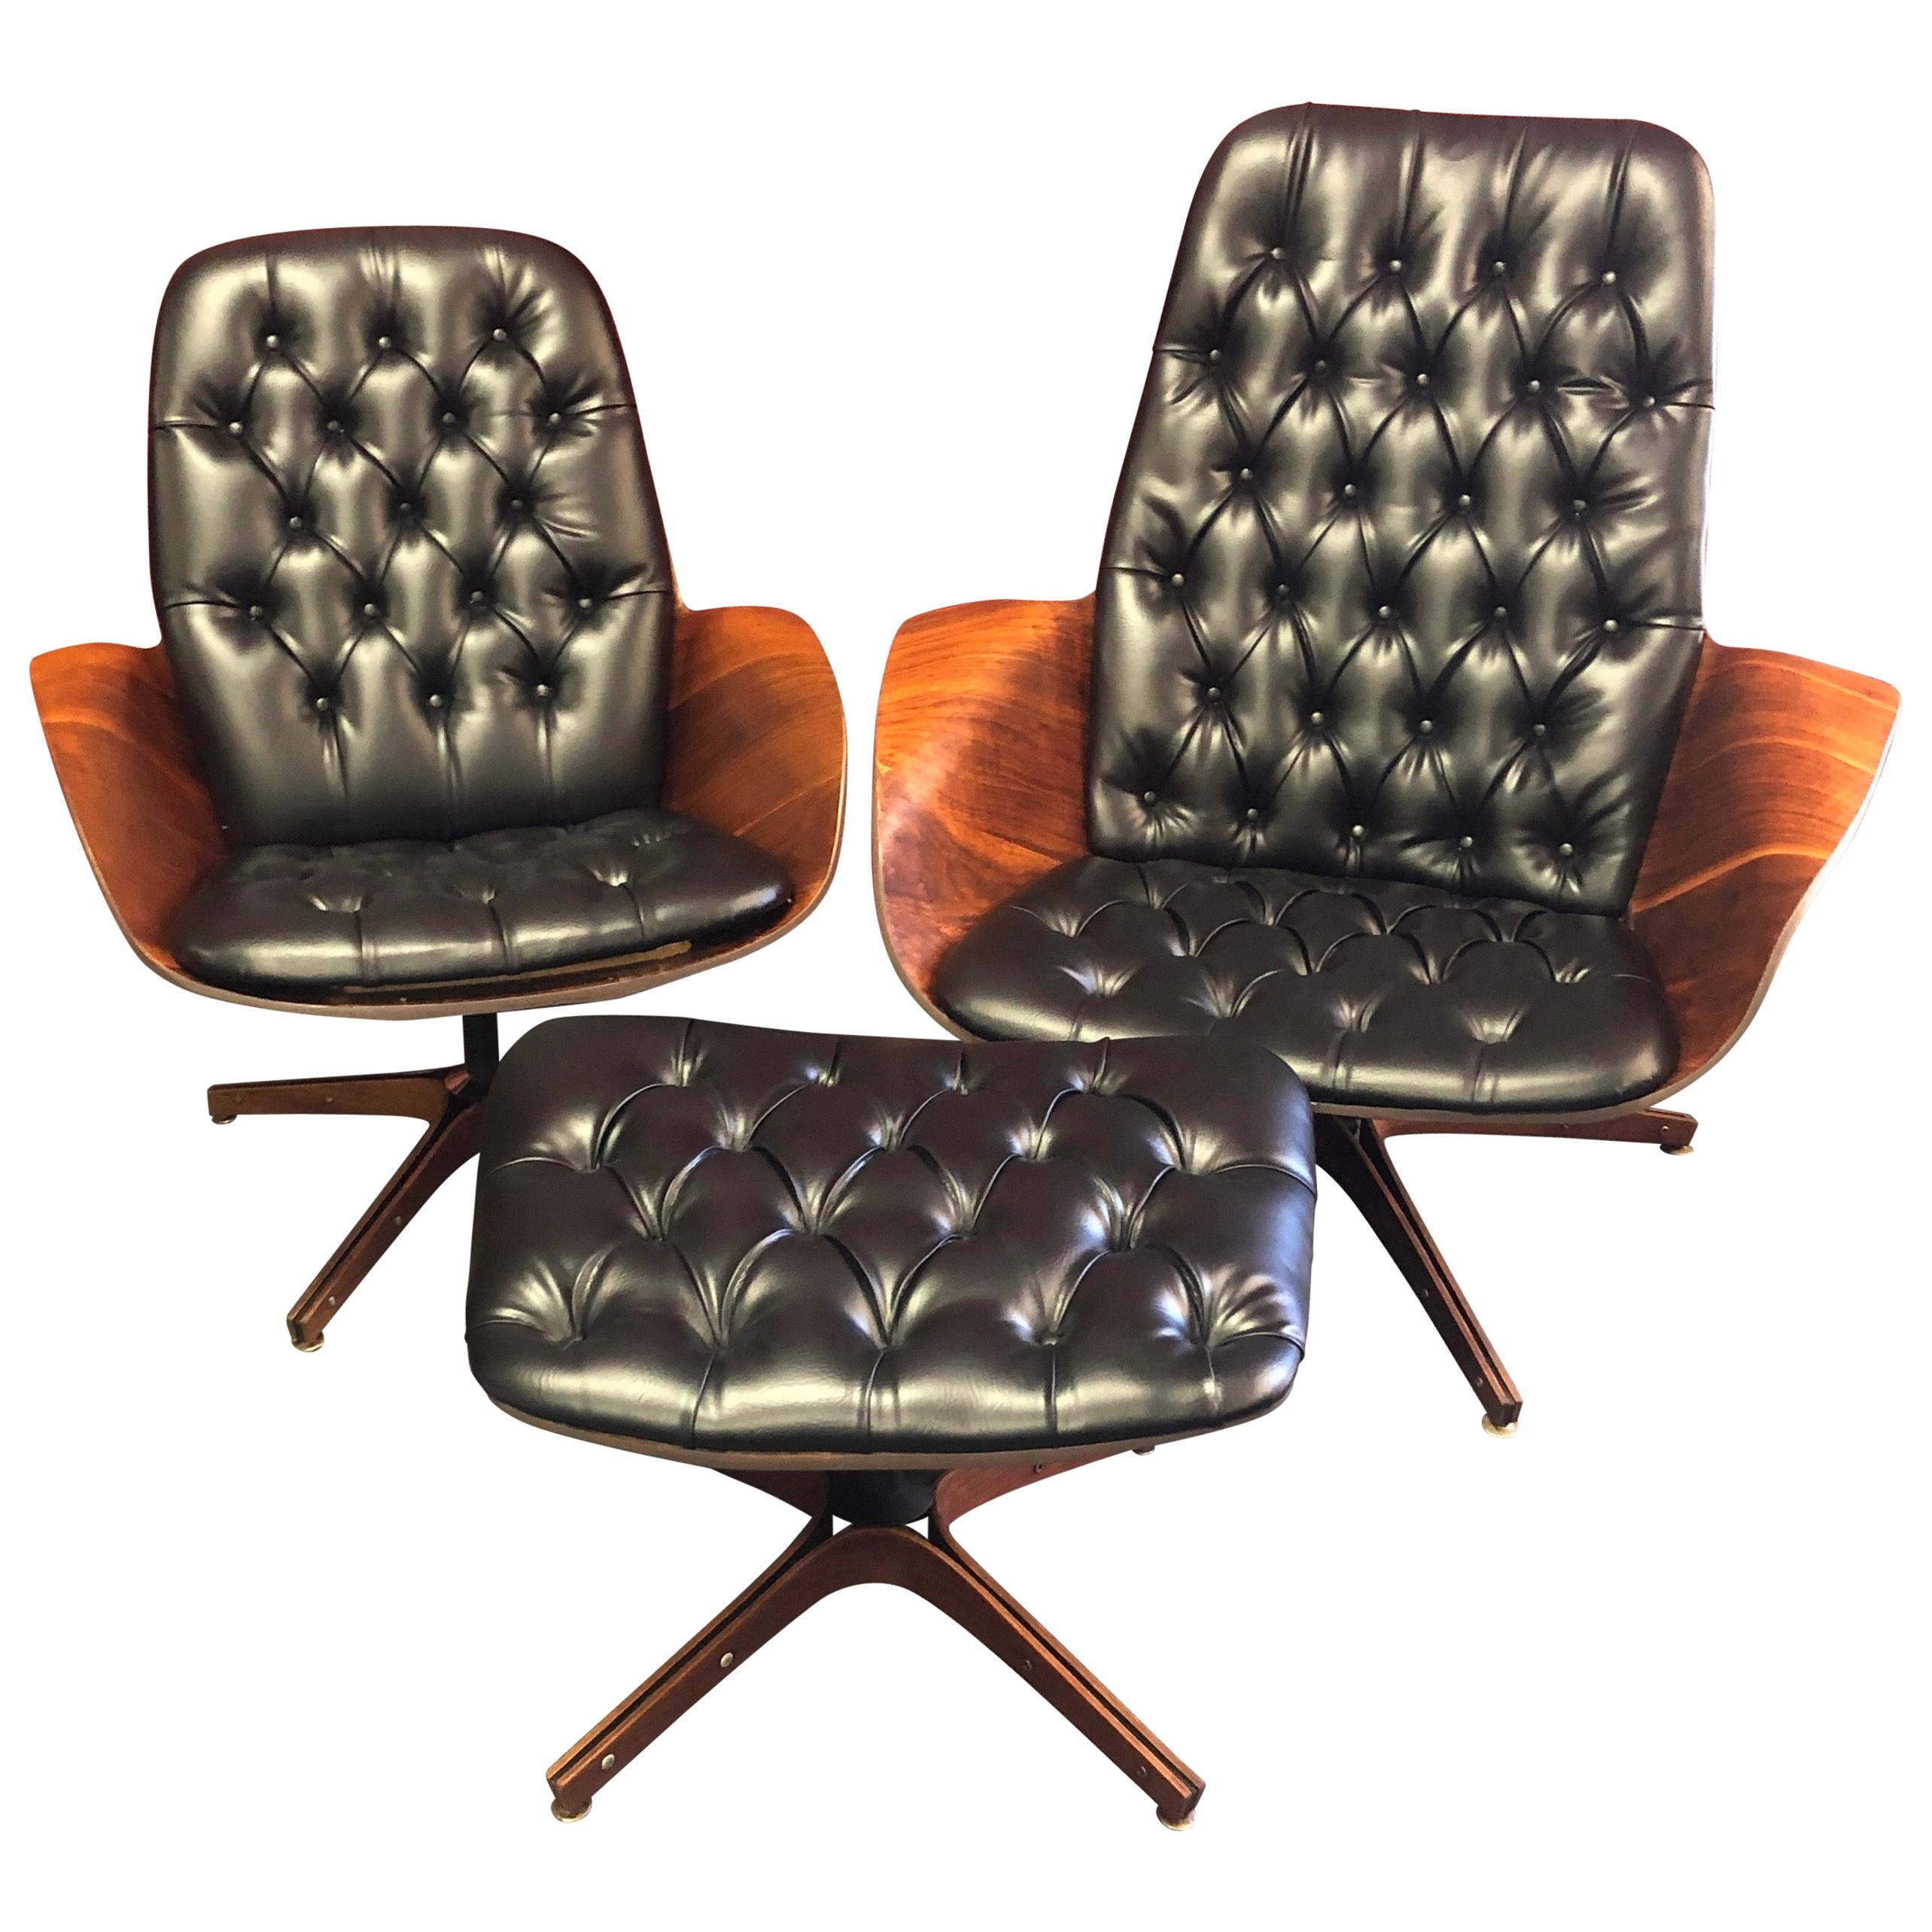 Iconic Mr. and Mrs. Chairs with Ottoman by George Mulhauser for Plycraft